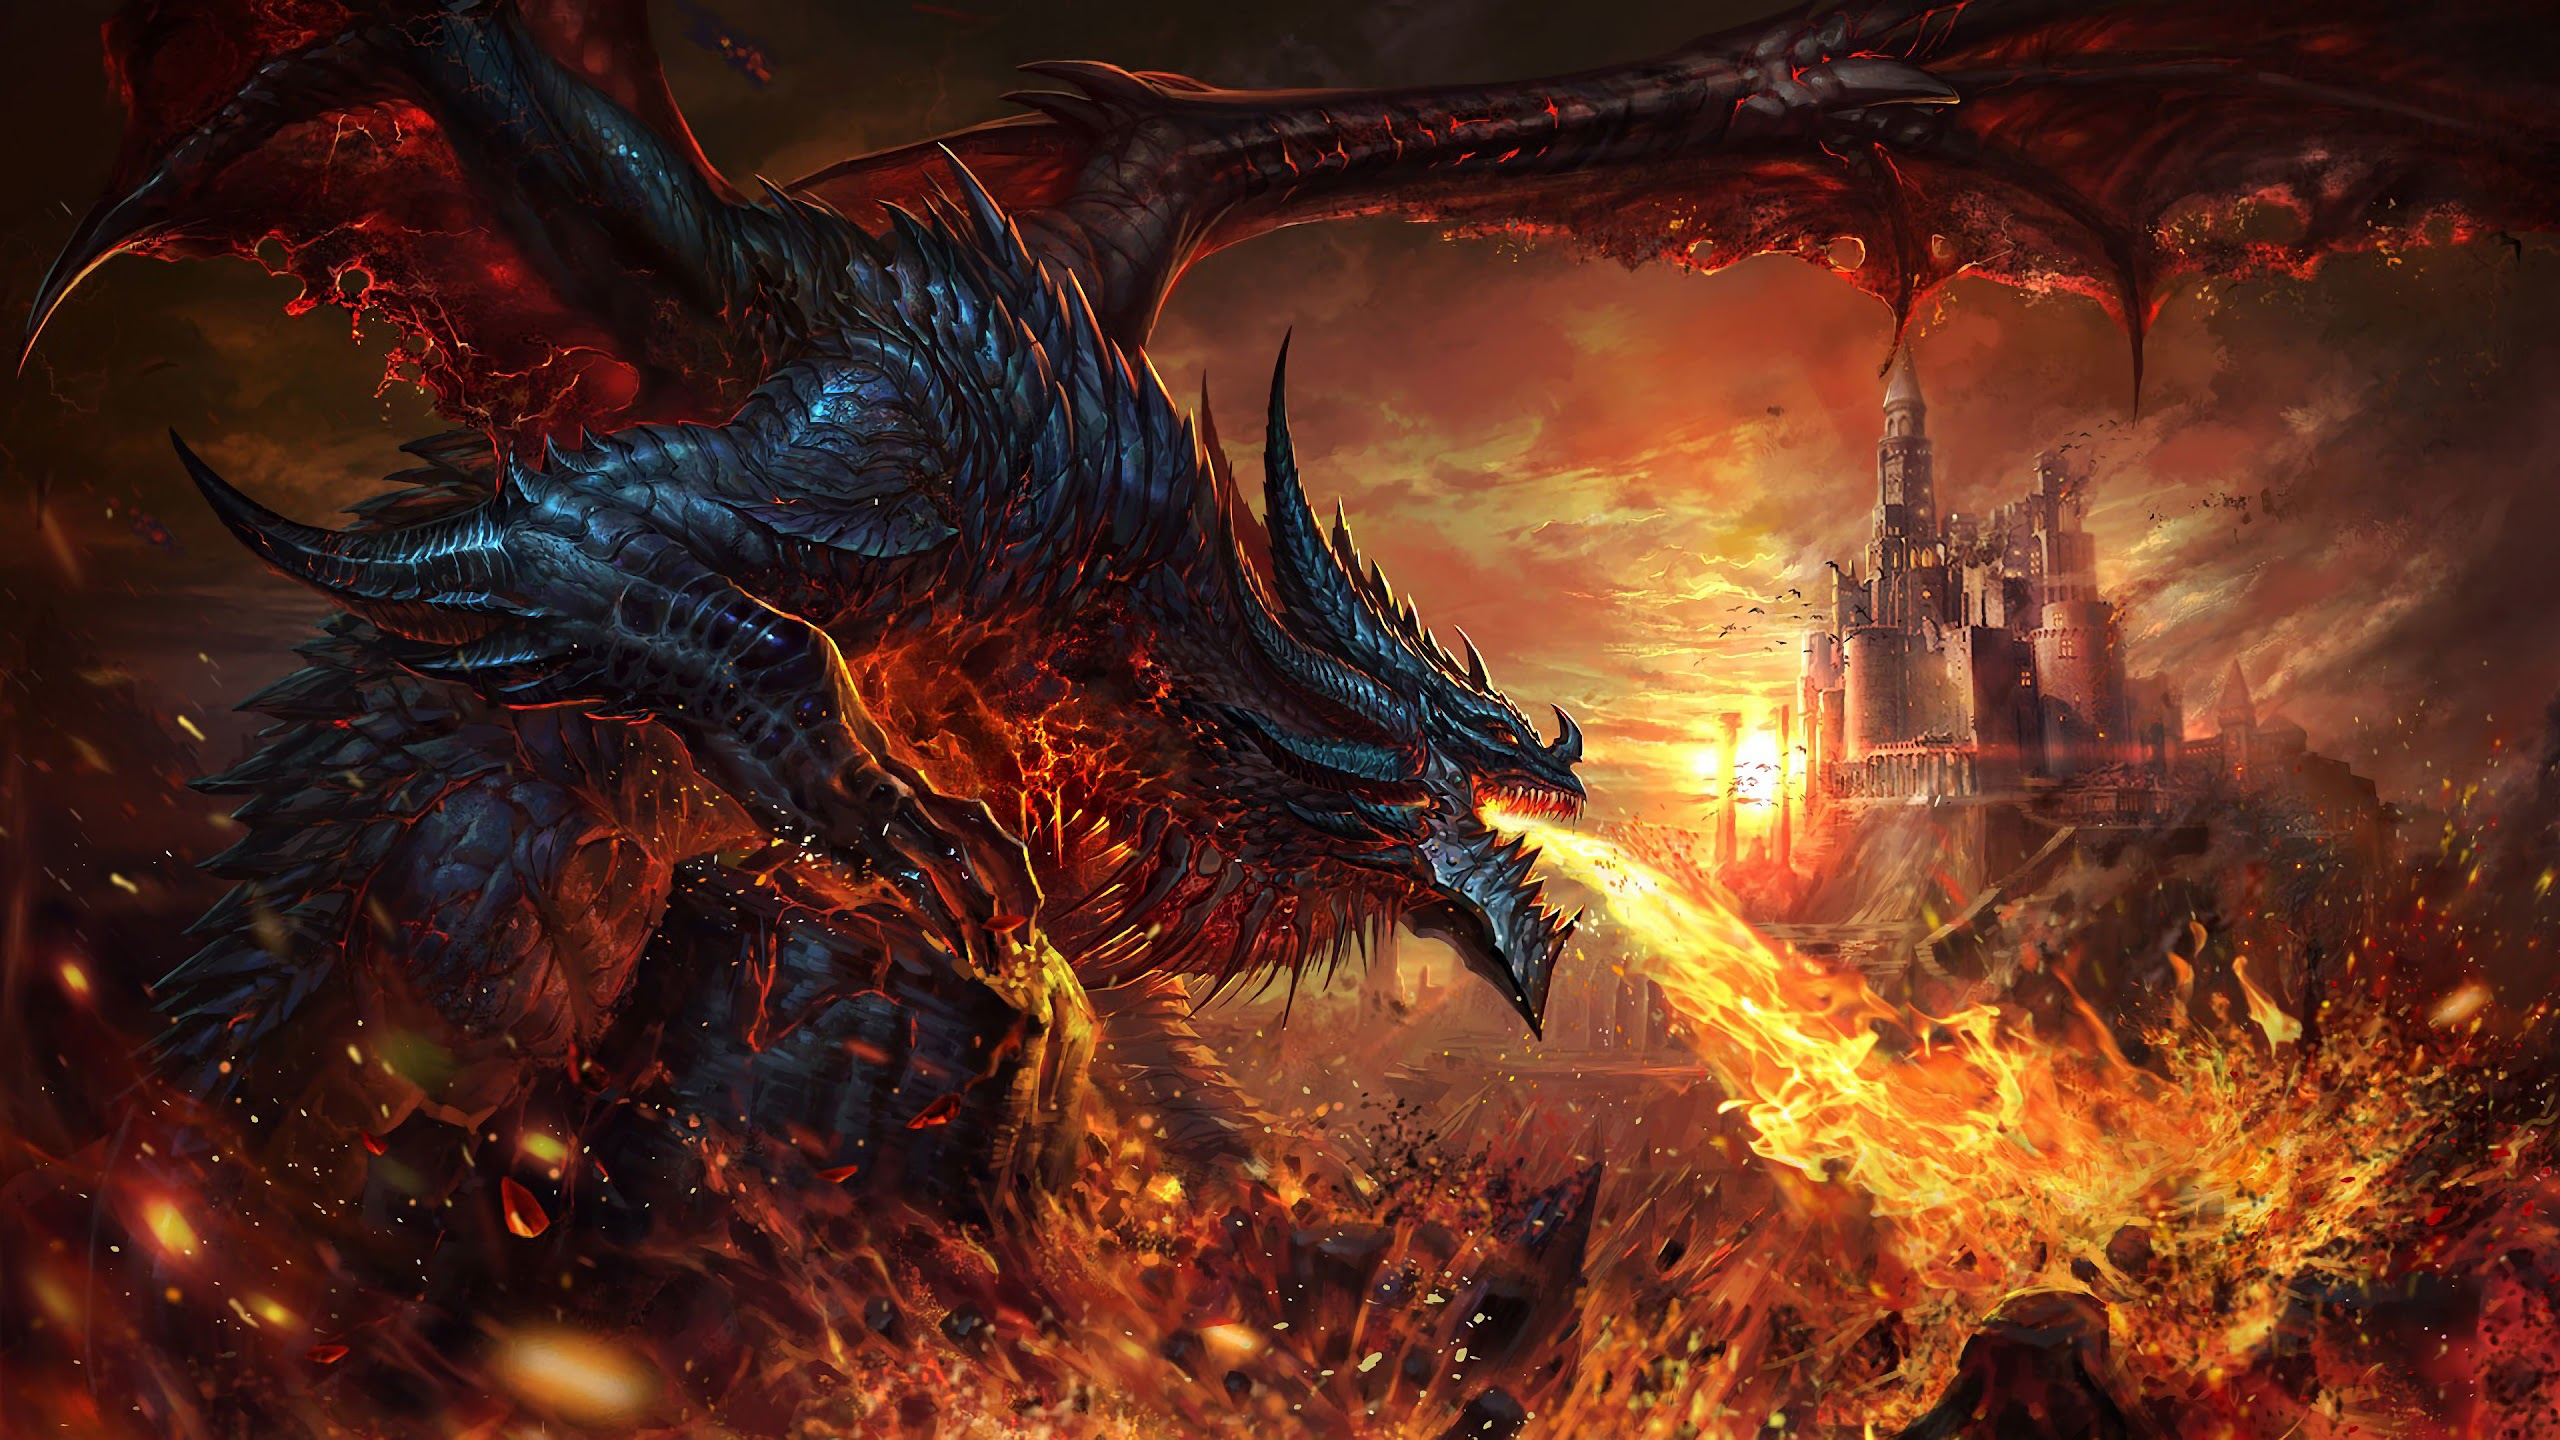 Dragon Fire Breath Fantasy 4k Wallpaper 73